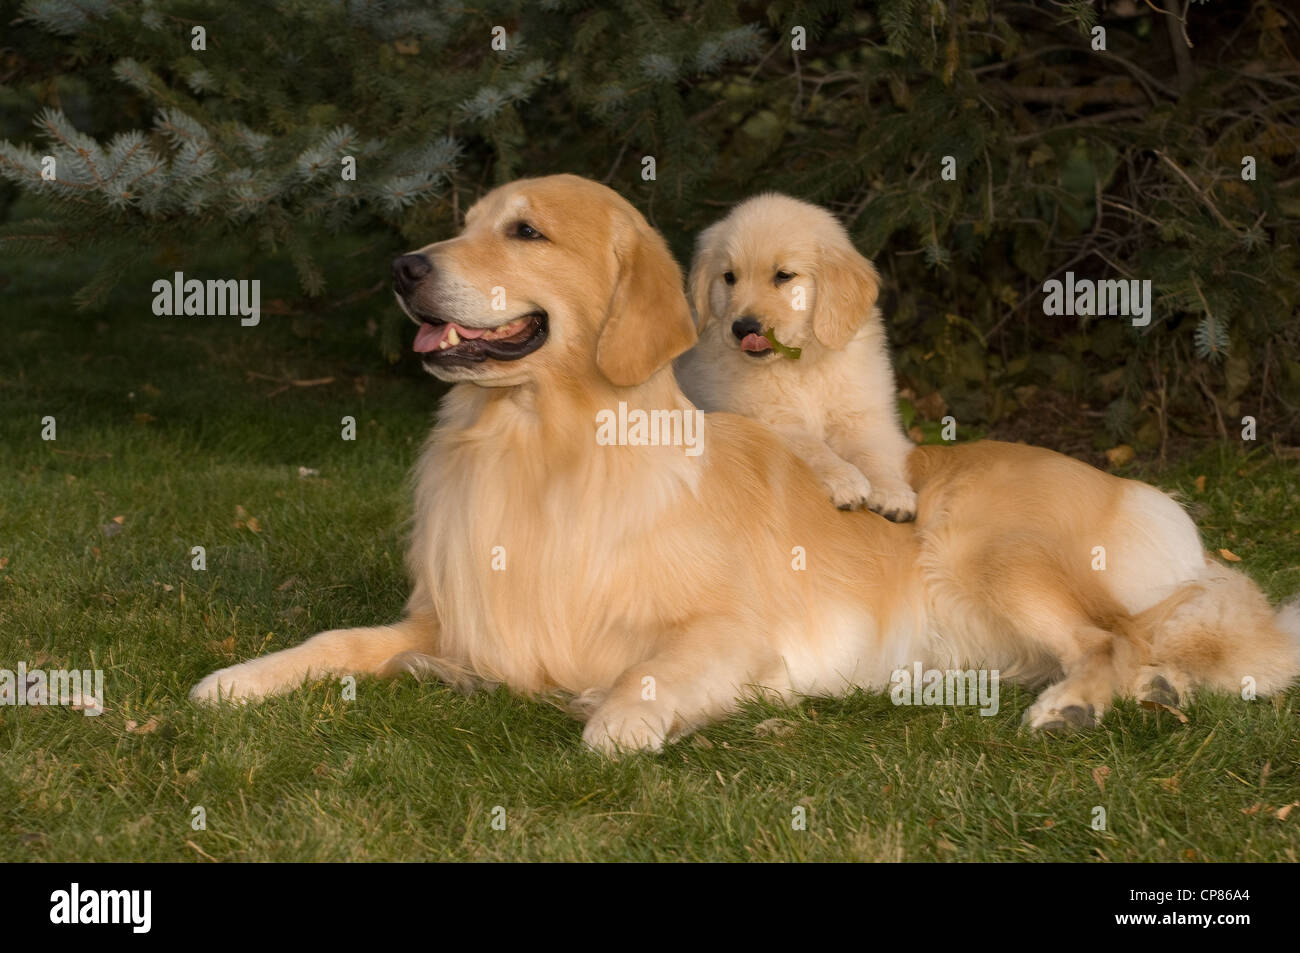 Golden retriever with puppy on back - Stock Image